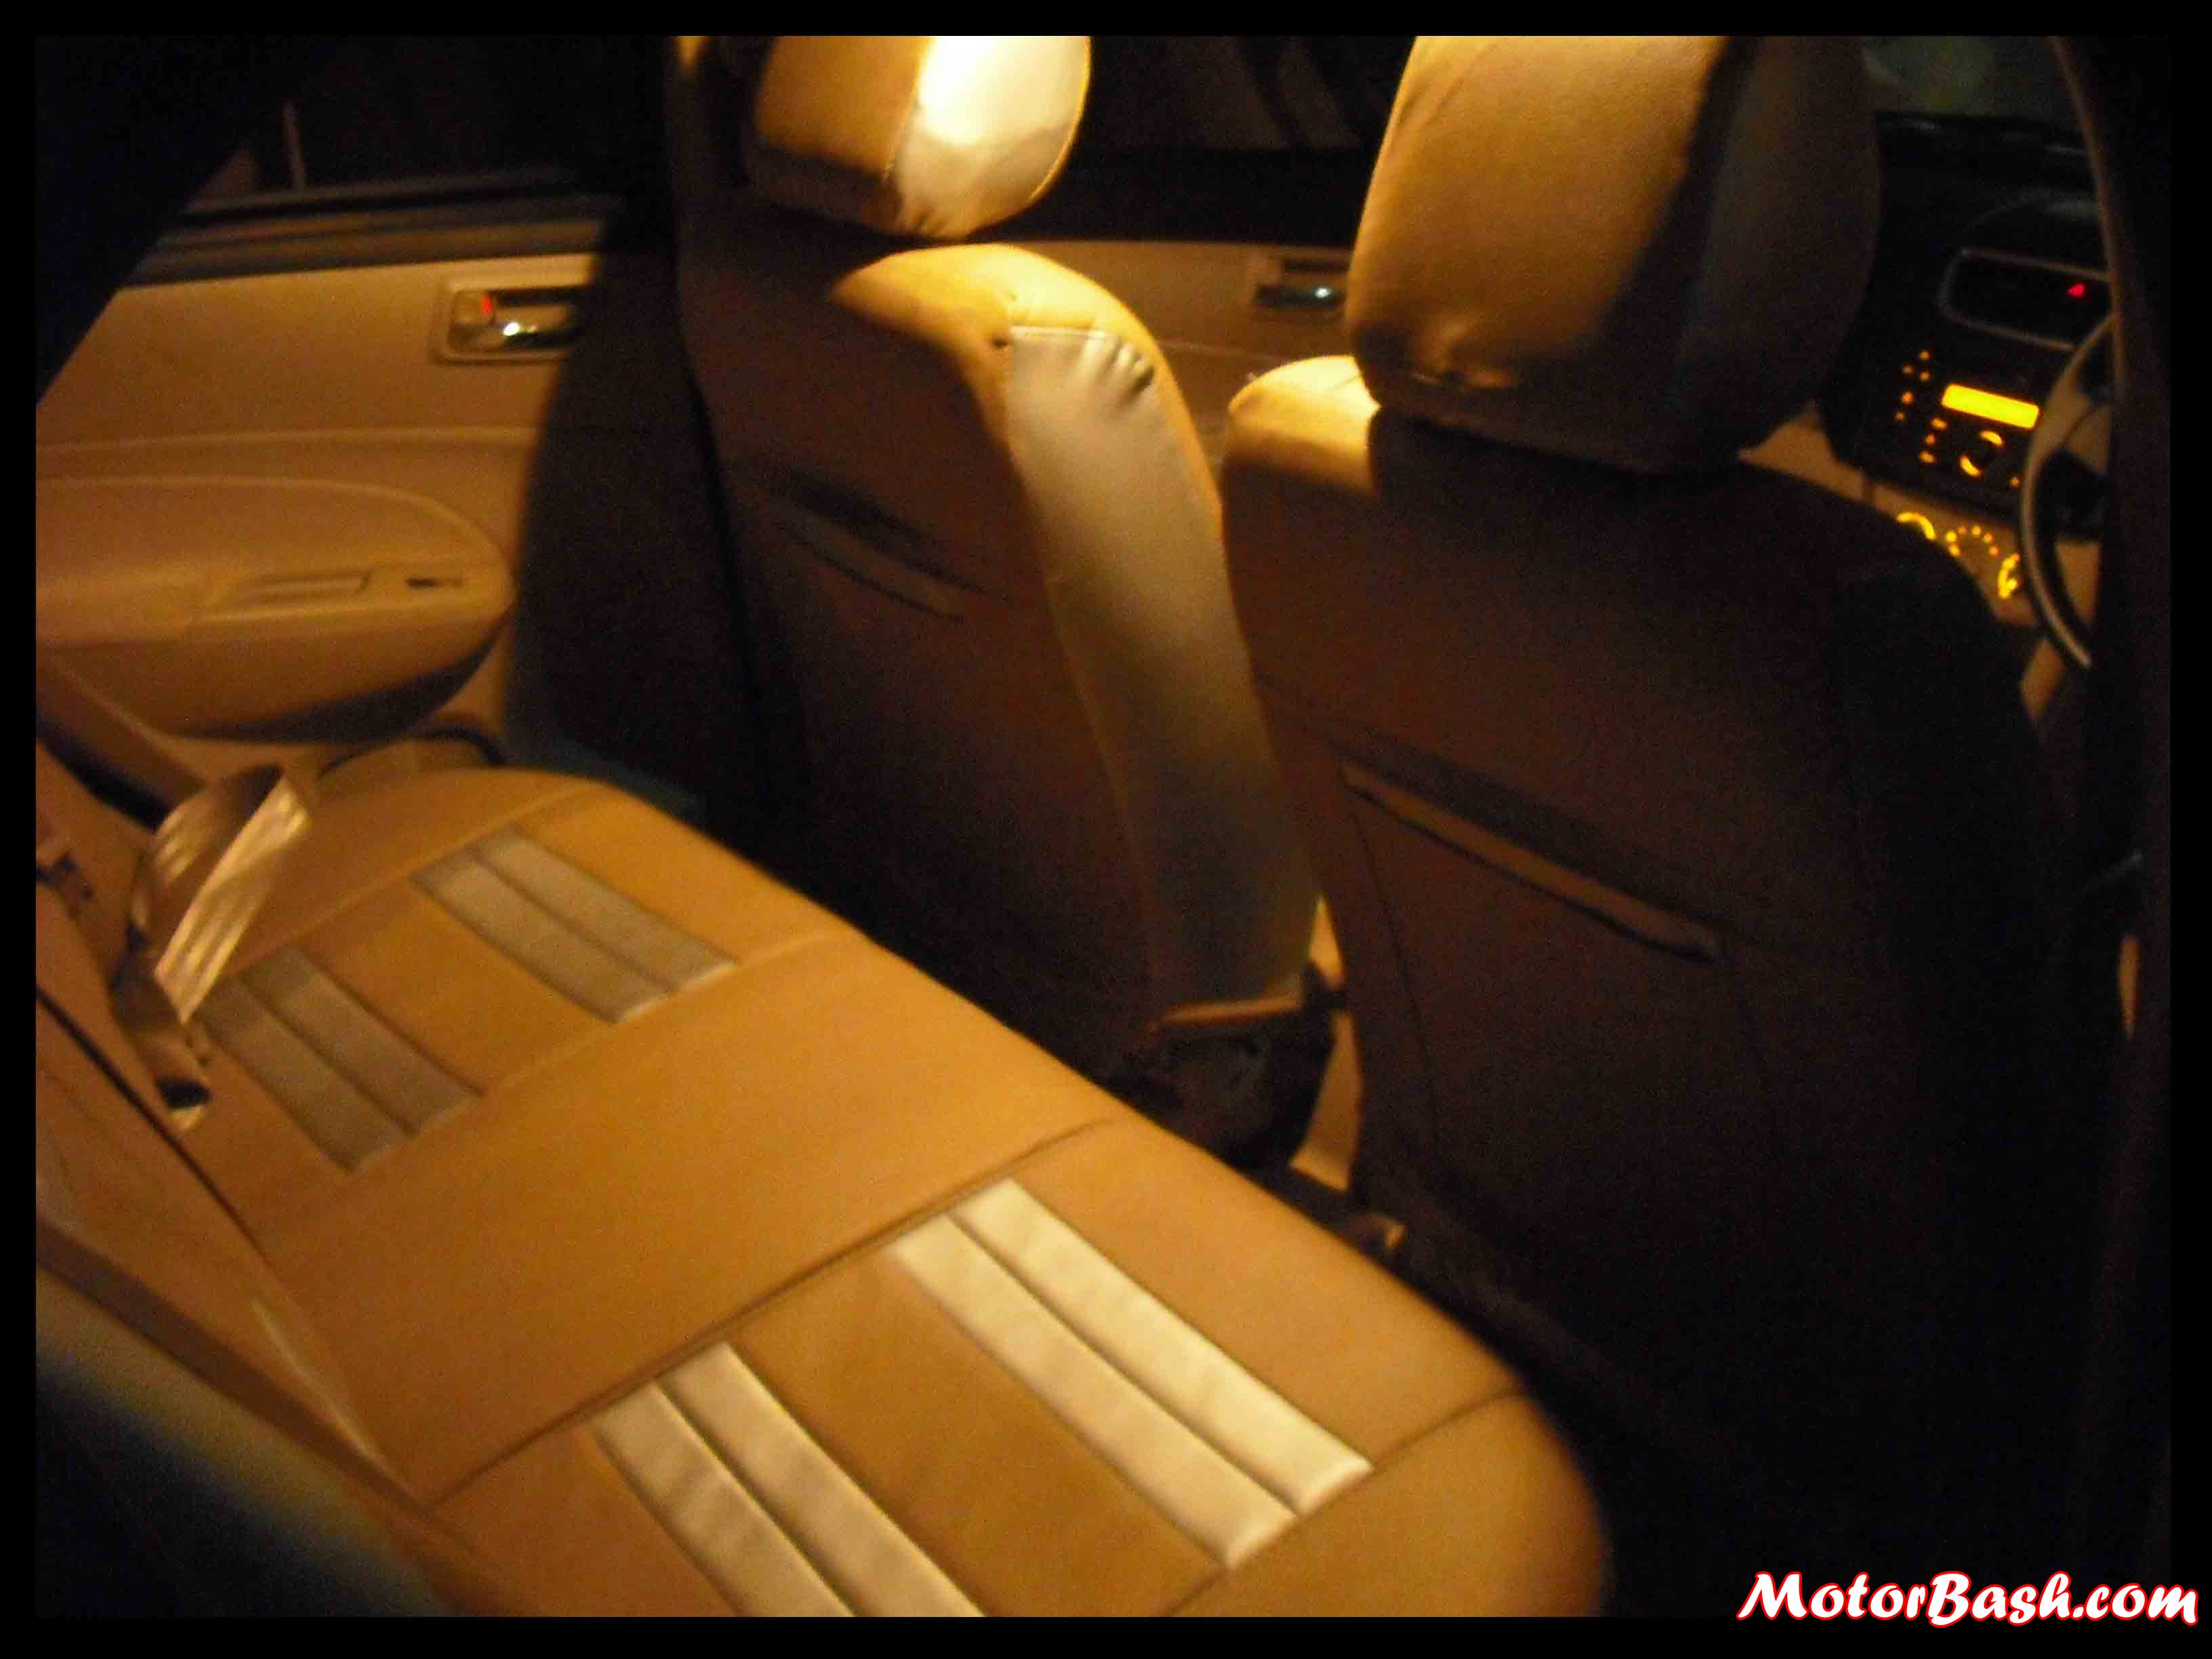 ….and back seats equally well. Check out the ambience at rear seat. Beige color really brightens the cabin.